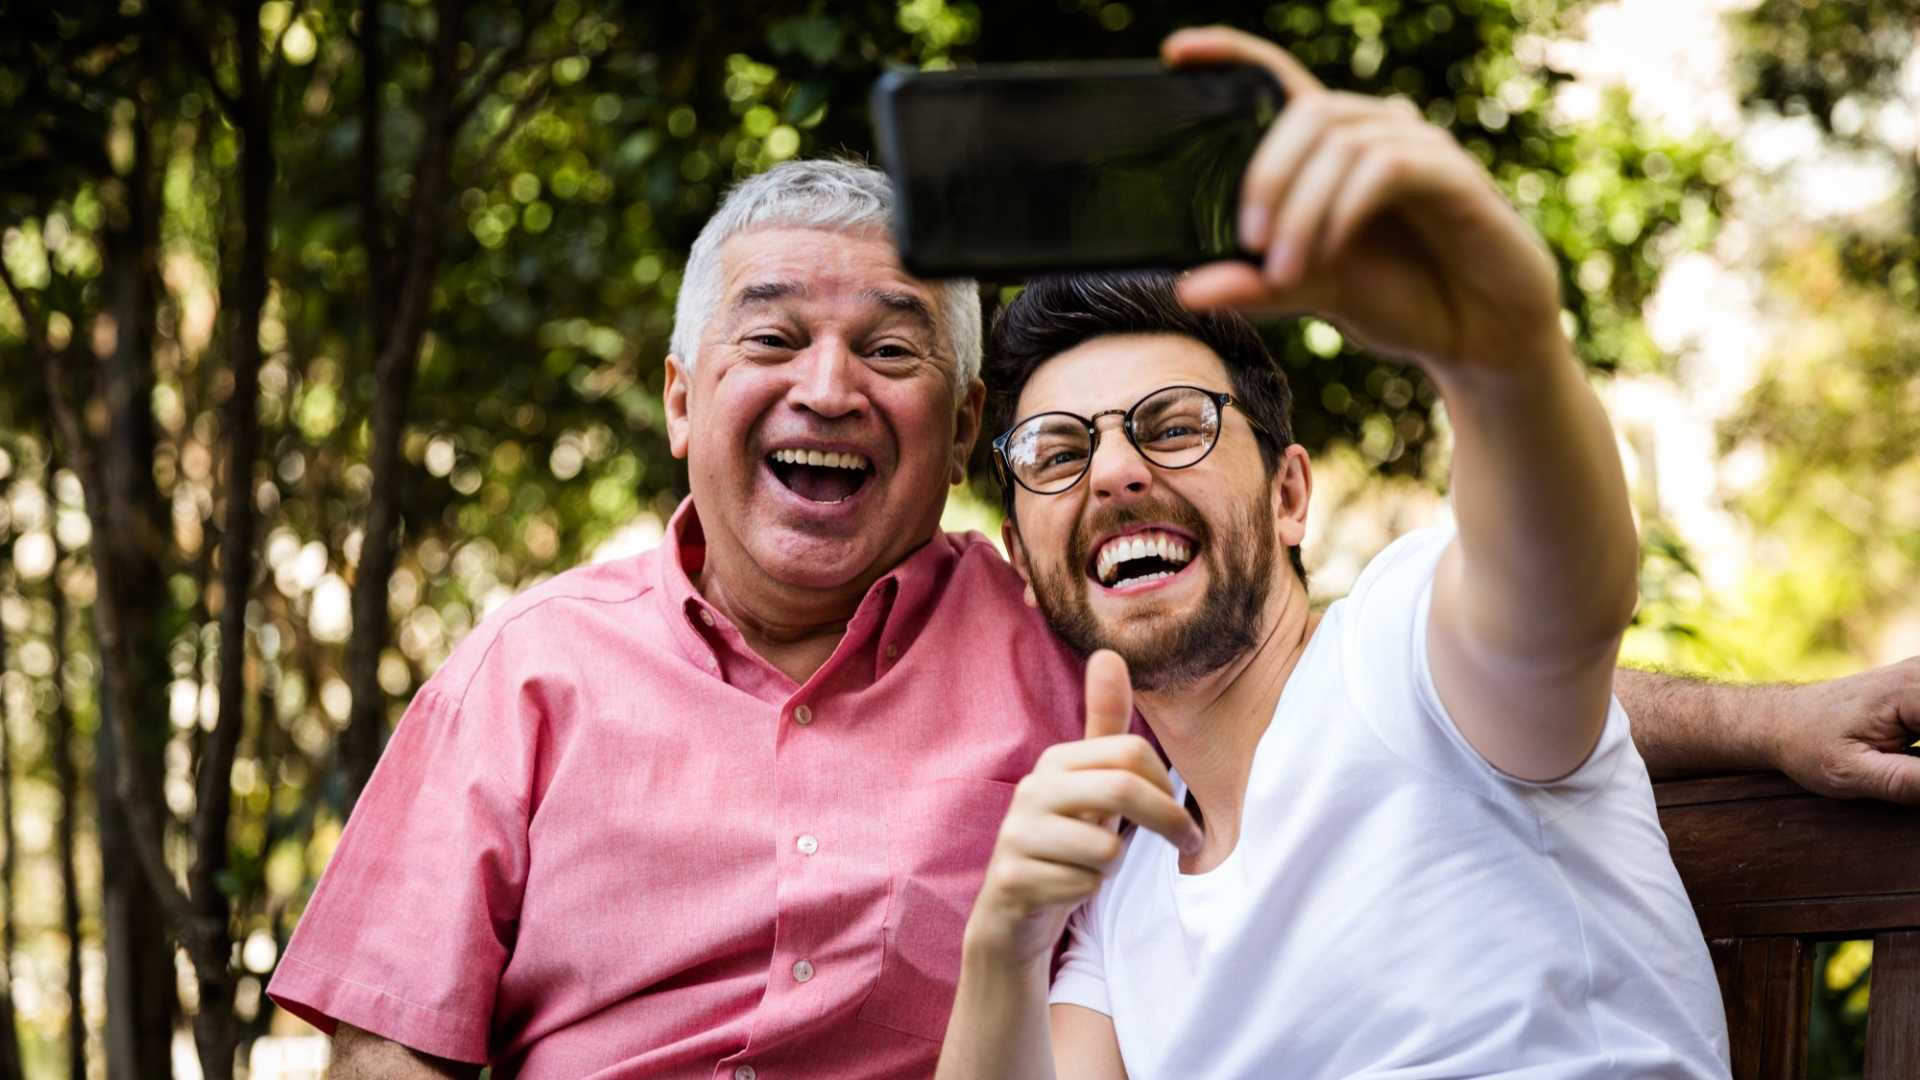 How to Market to Multiple Generations on Social Media